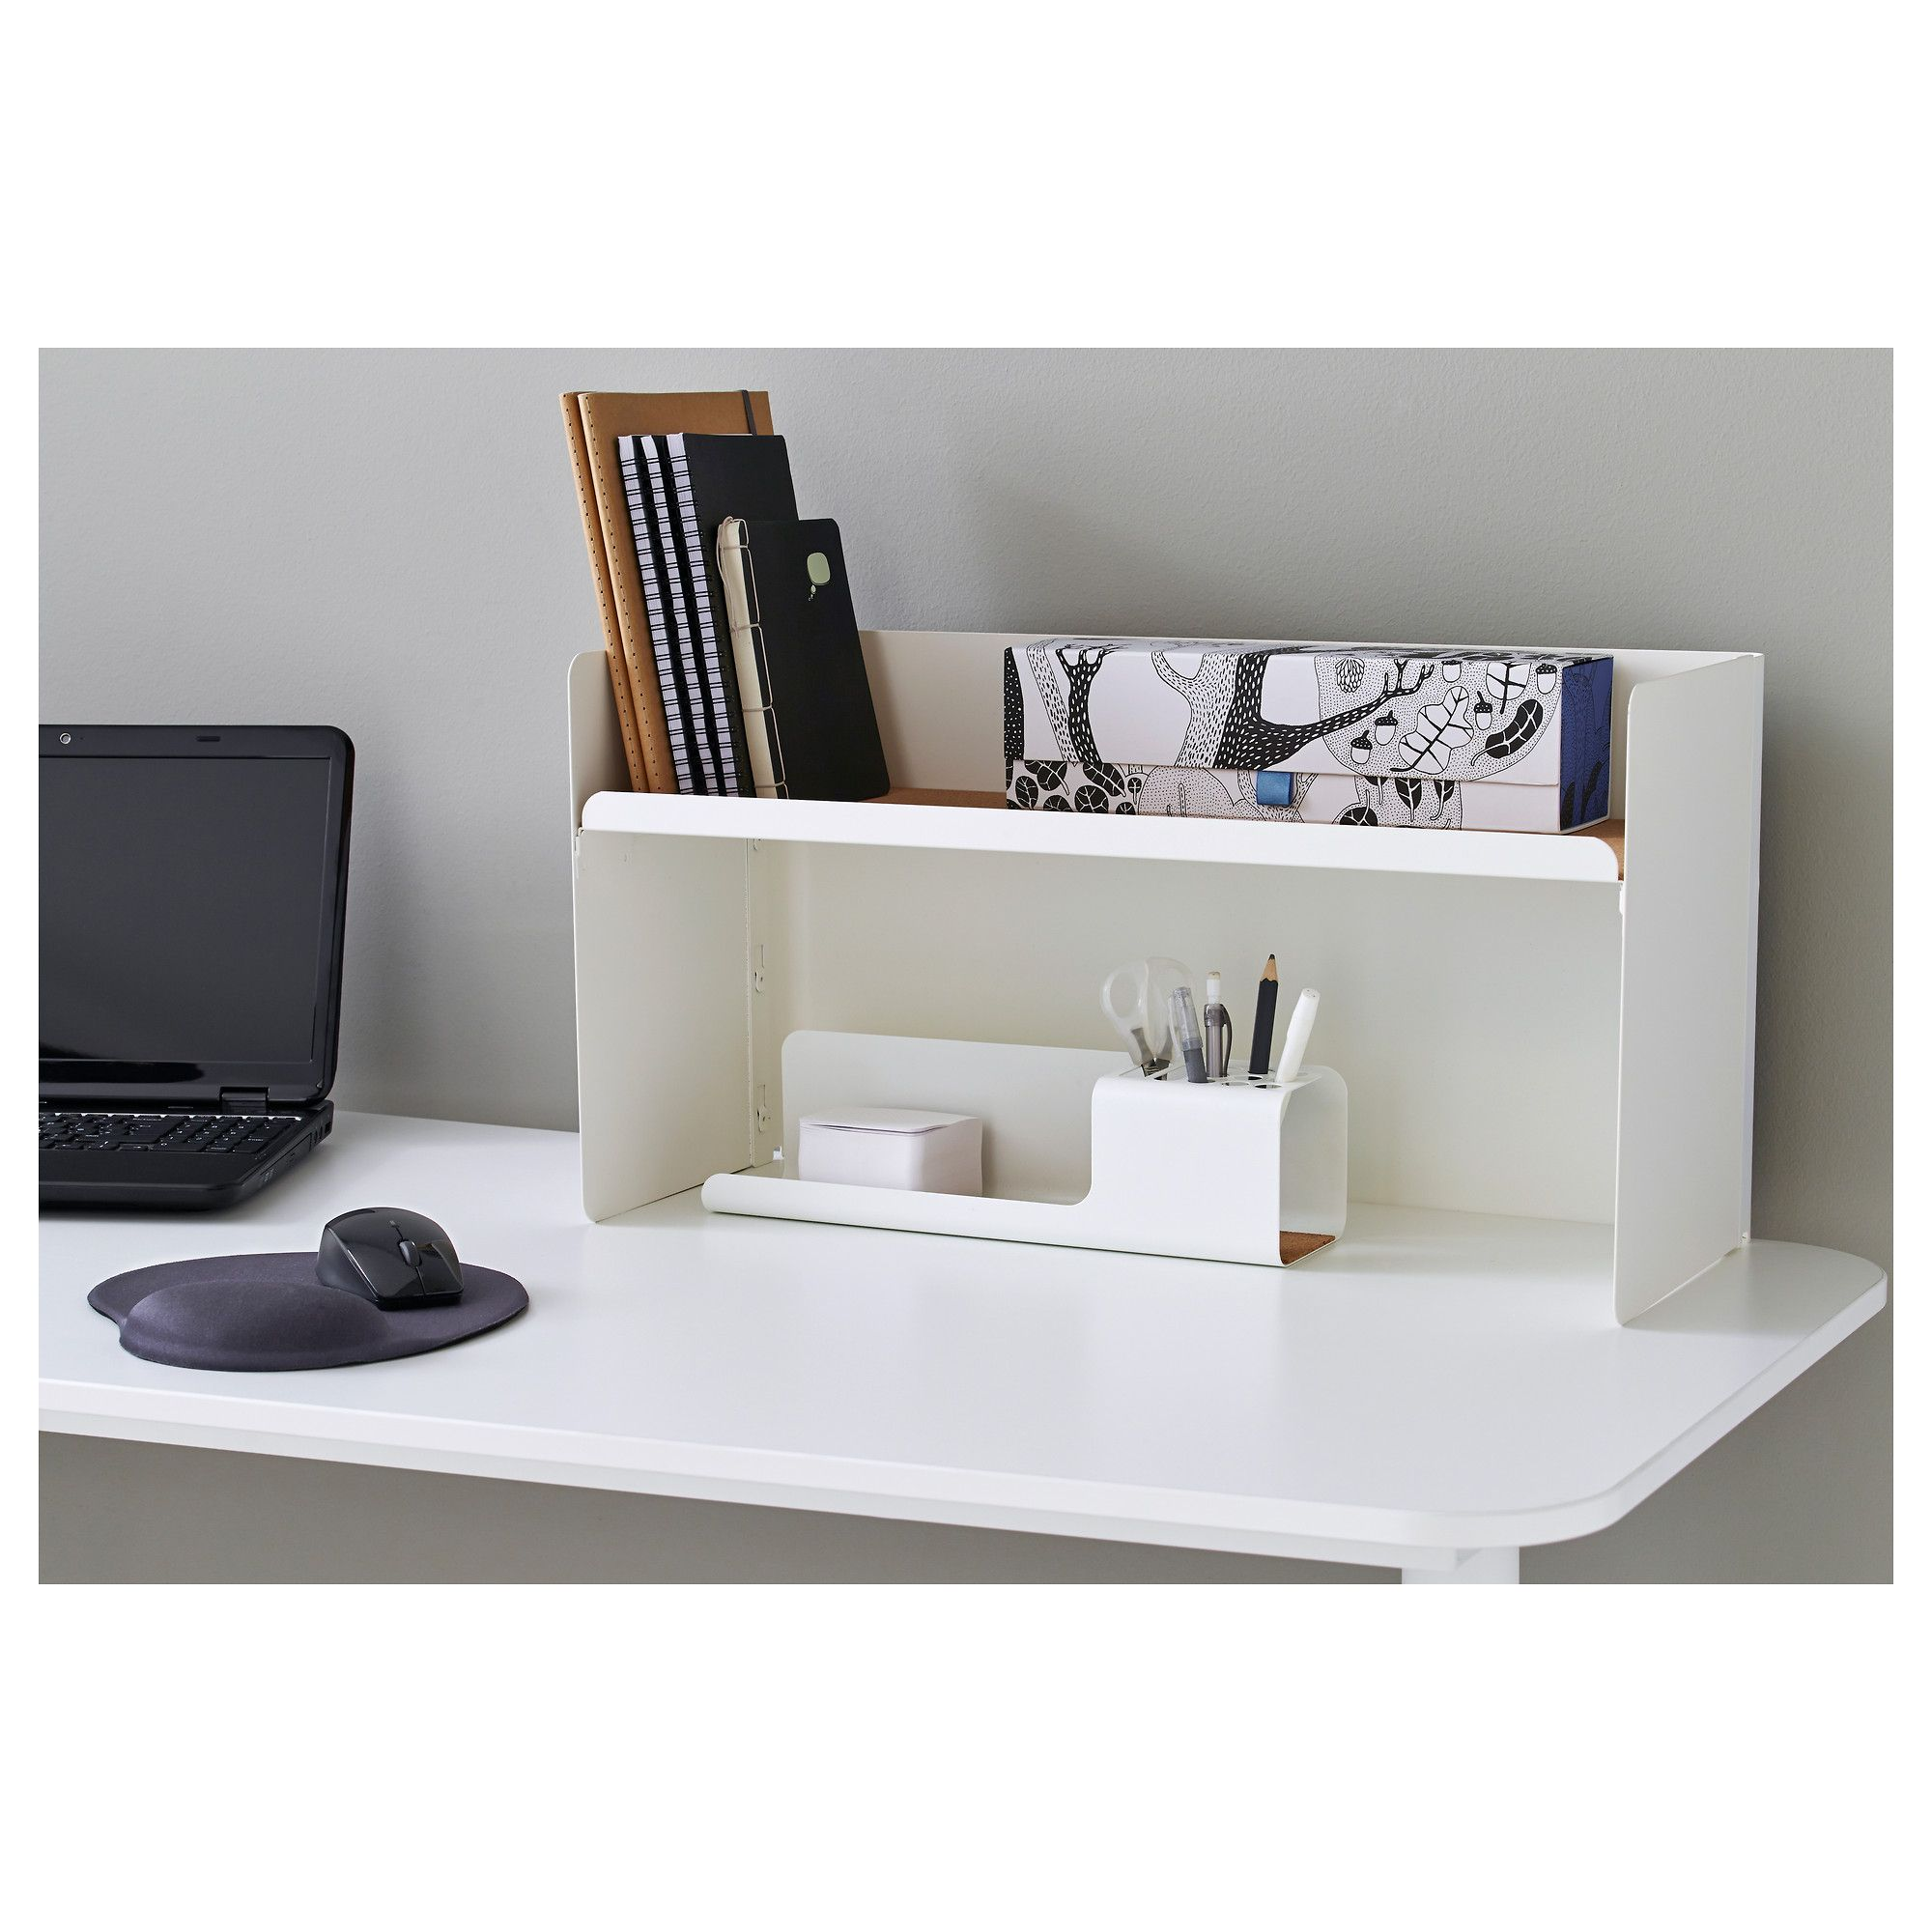 Ikea Desk Top Home Design Ikea Bekant Desk Top Shelf Your Workspace Pinterest